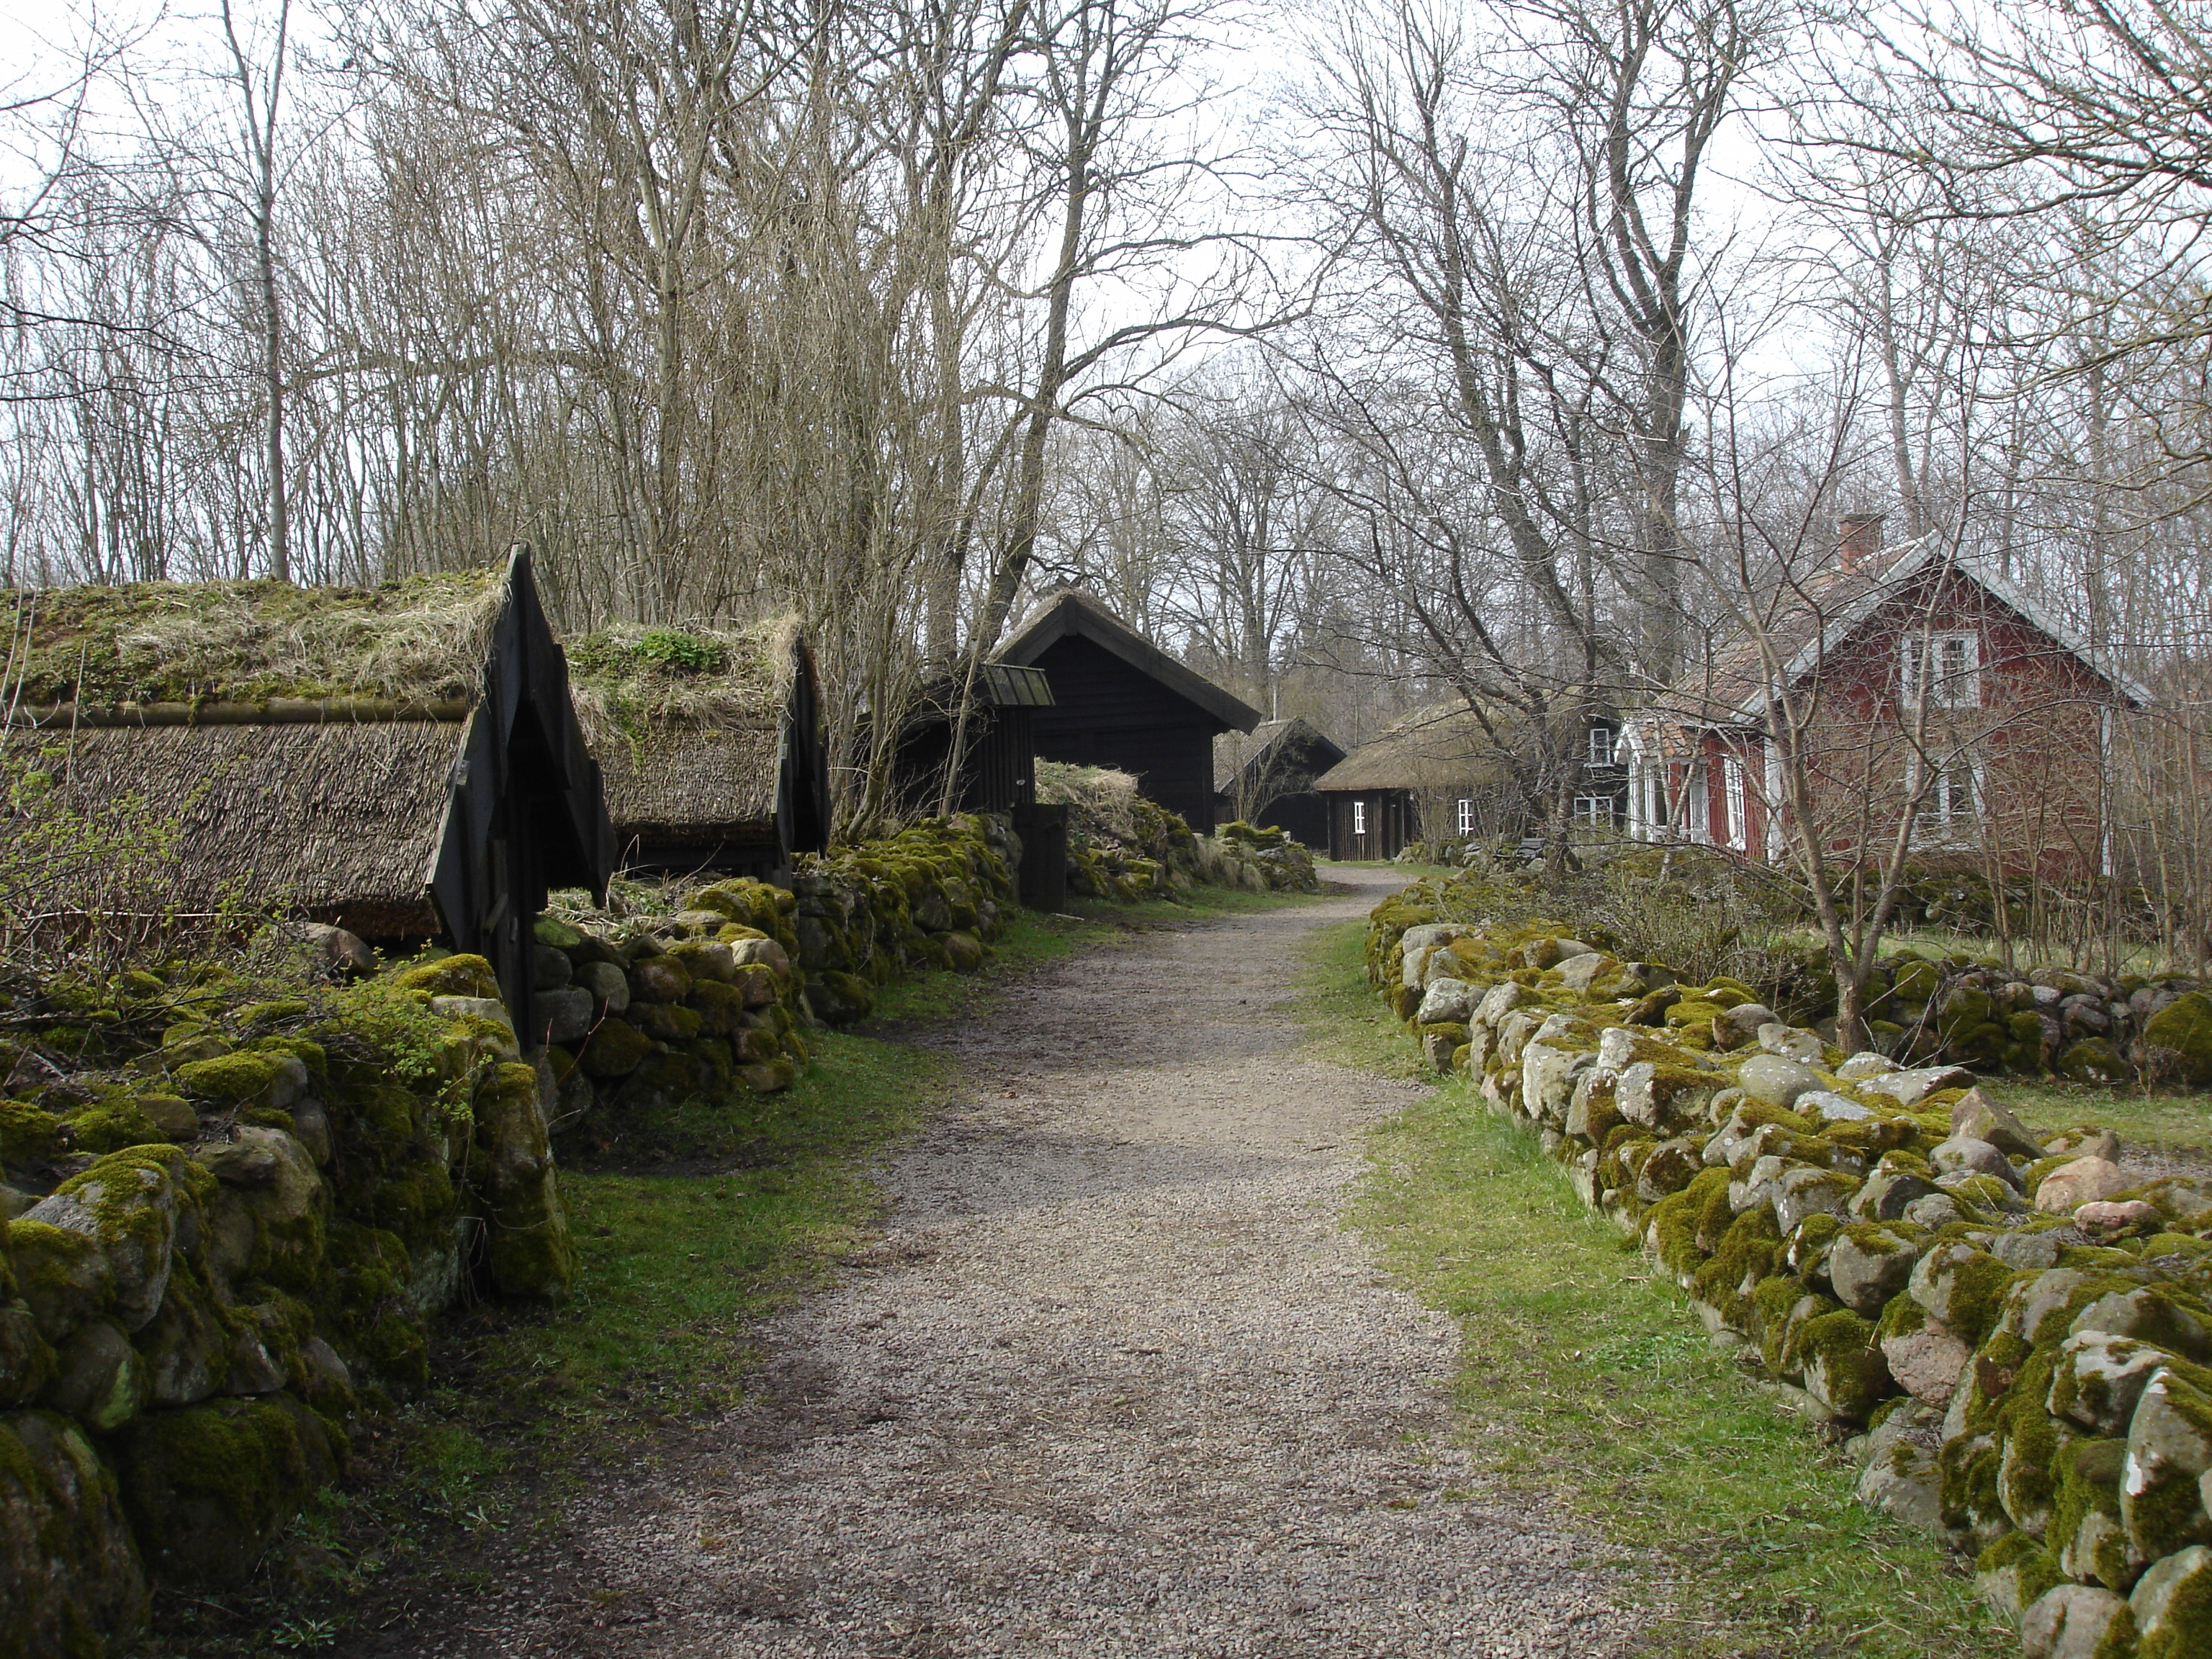 19th century Swedish village